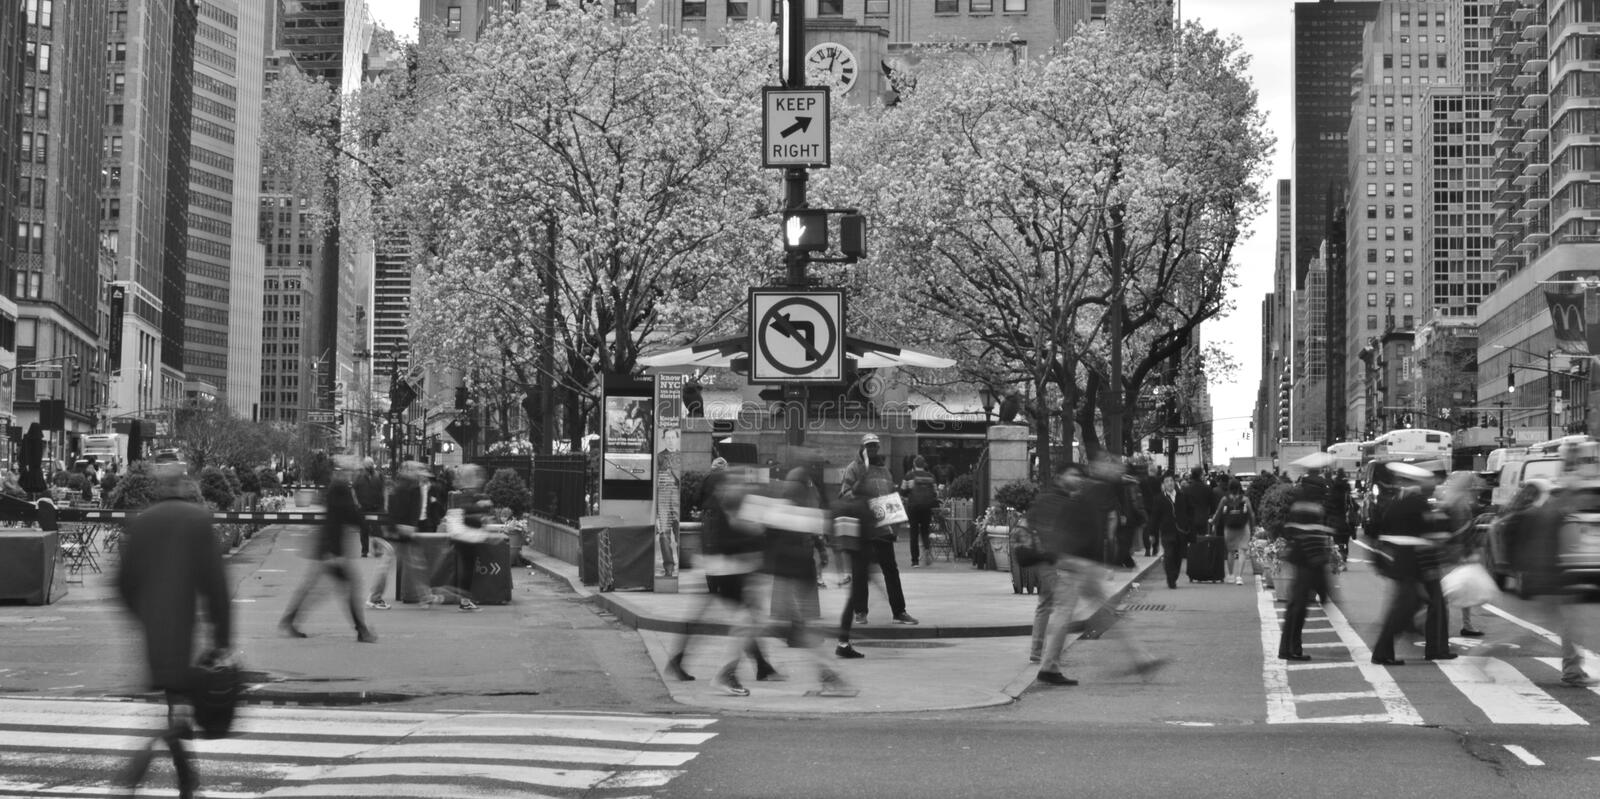 Busy City Lifestyle Motion Blur People and Cars Rush Hour Midtown Manhattan NYC royalty free stock photo